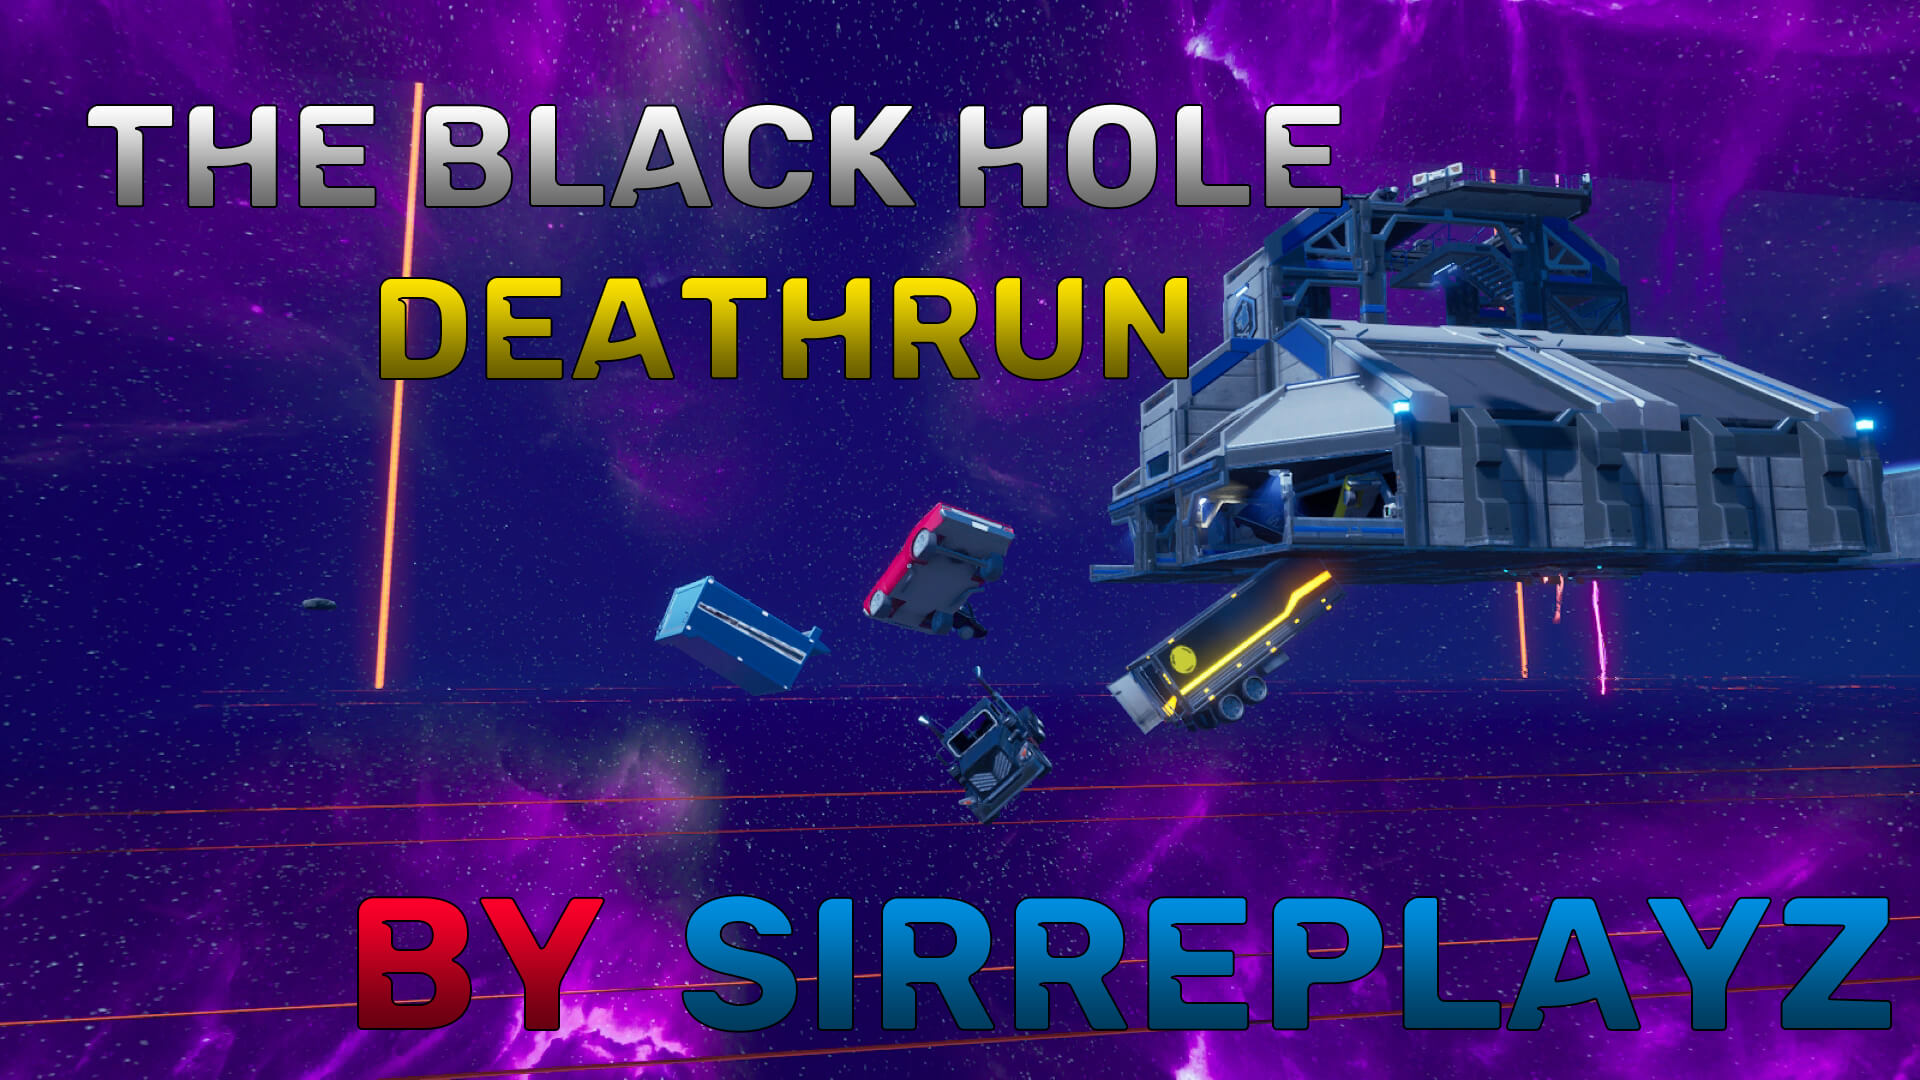 THE BLACK HOLE DEATHRUN